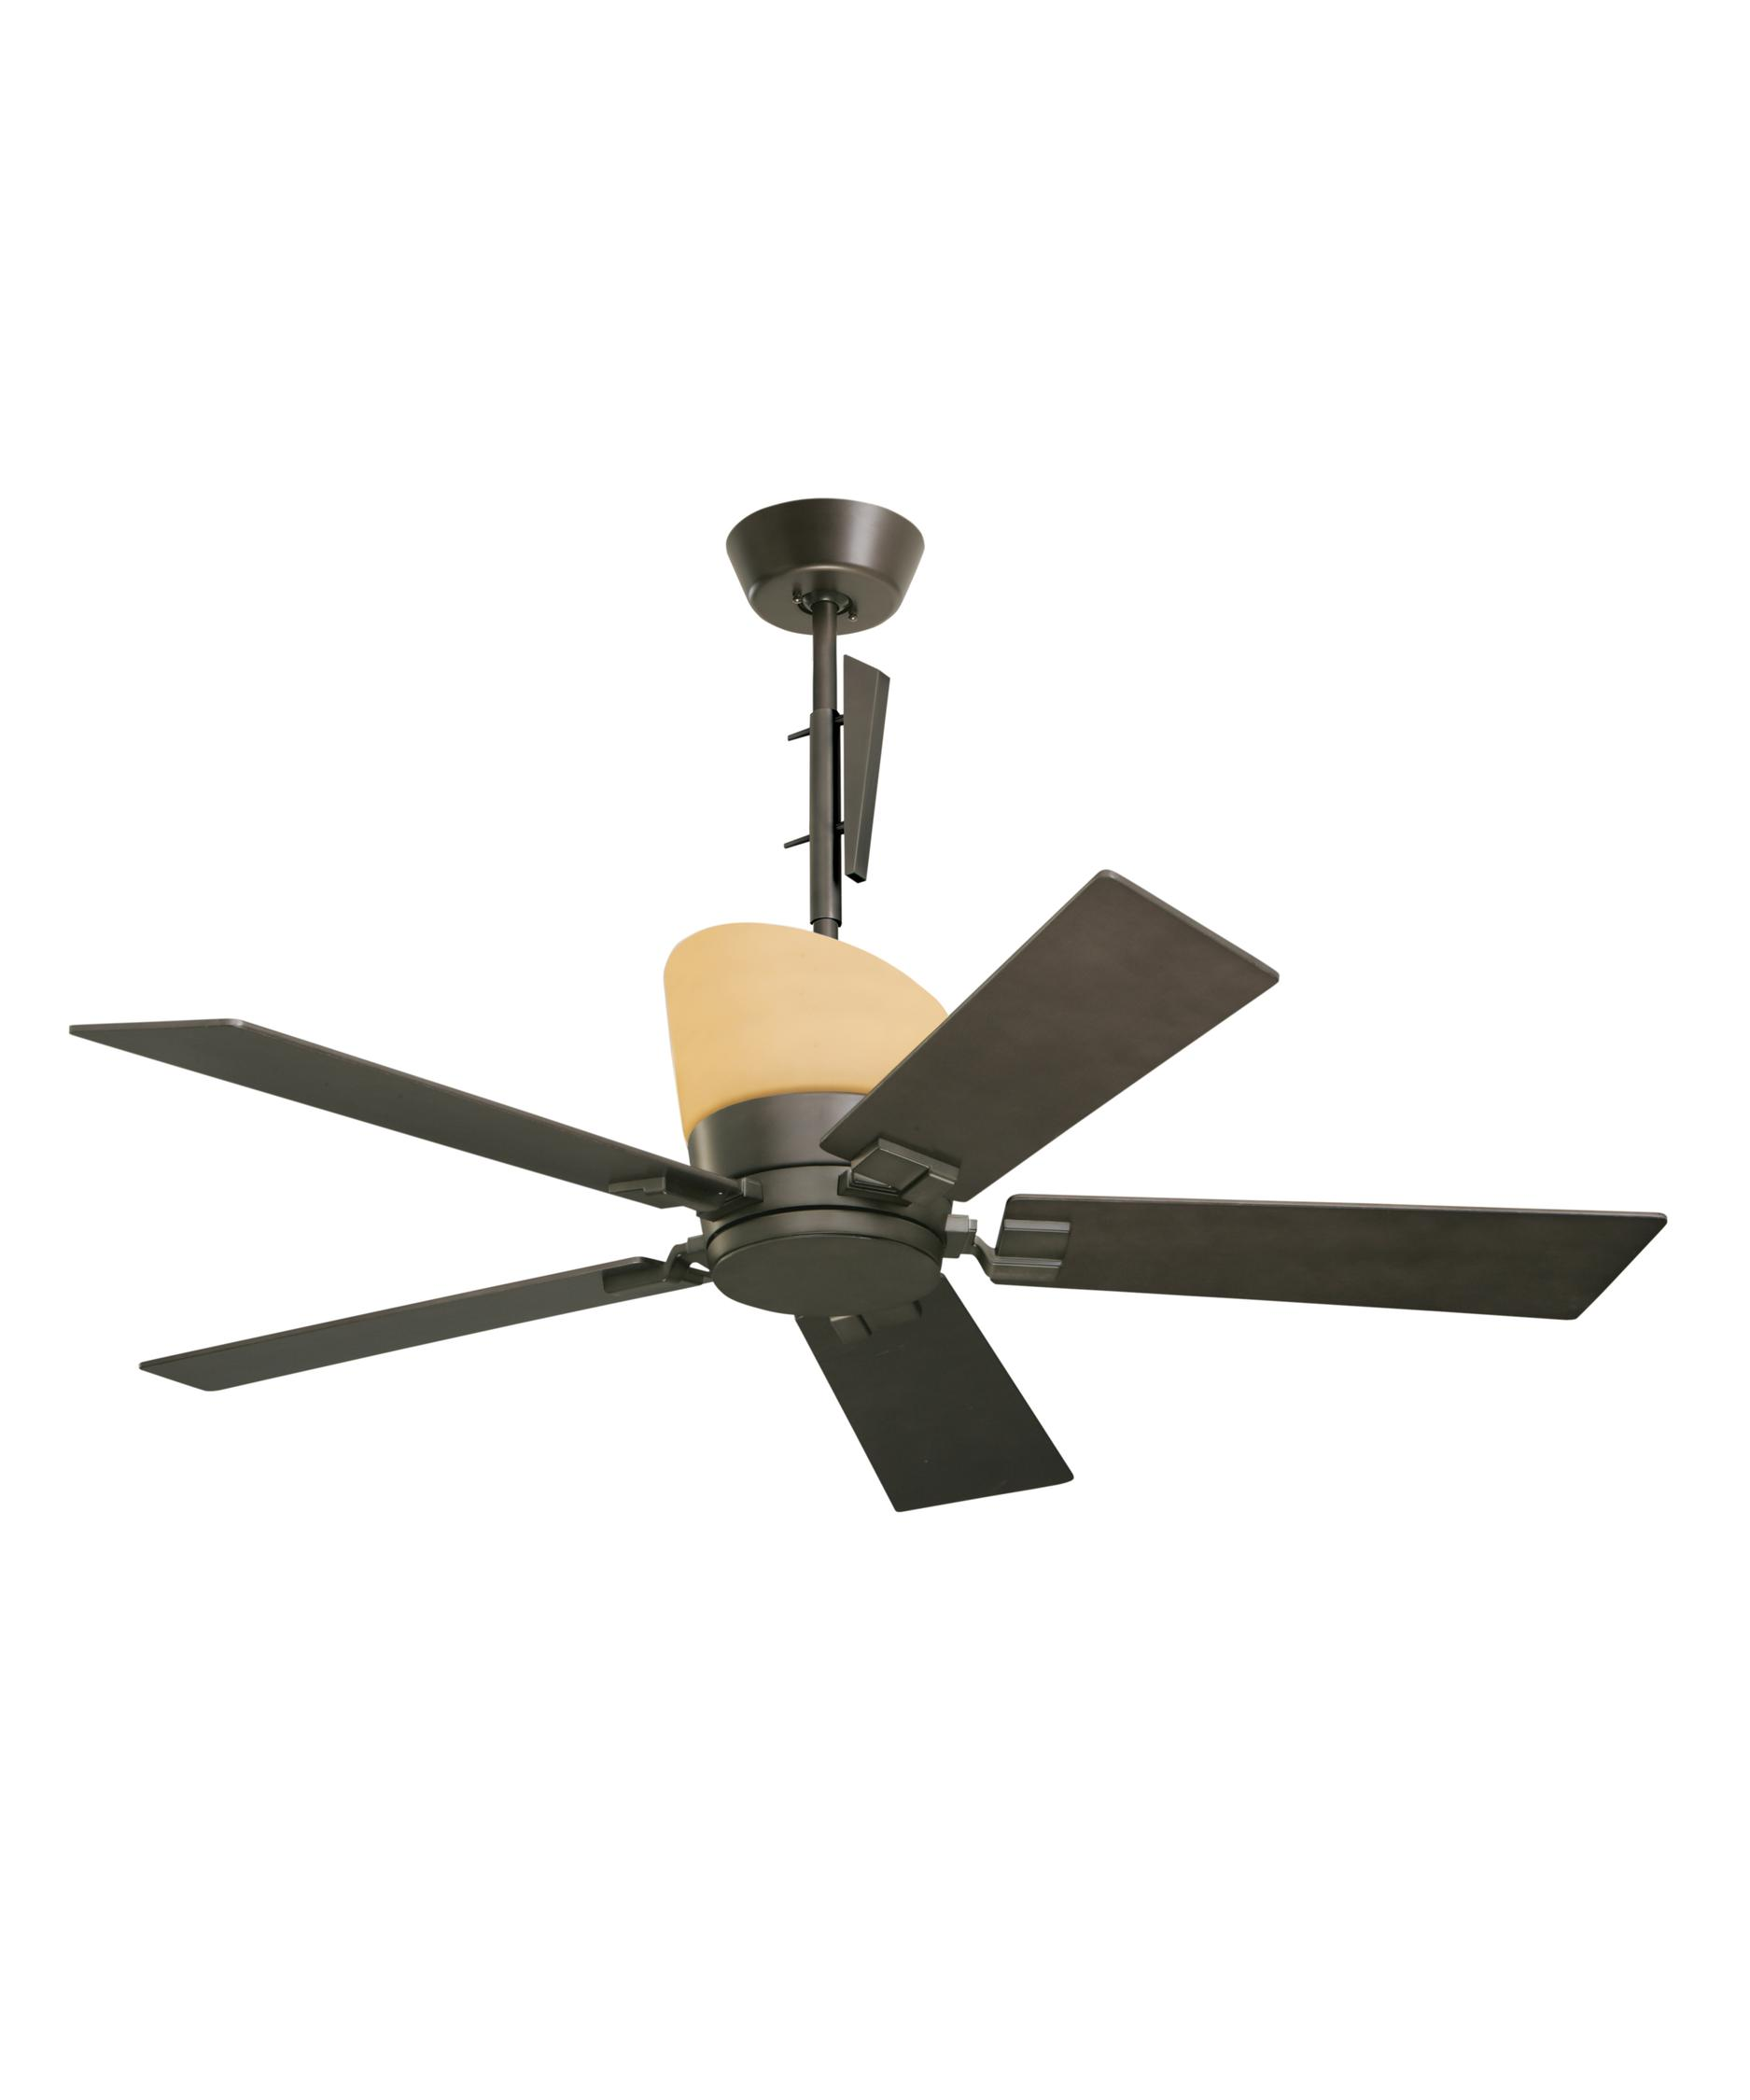 Murray Feiss Ceiling Fan Light Kit: Emerson CF745 Milano Vera 52 Inch Ceiling Fan With Light